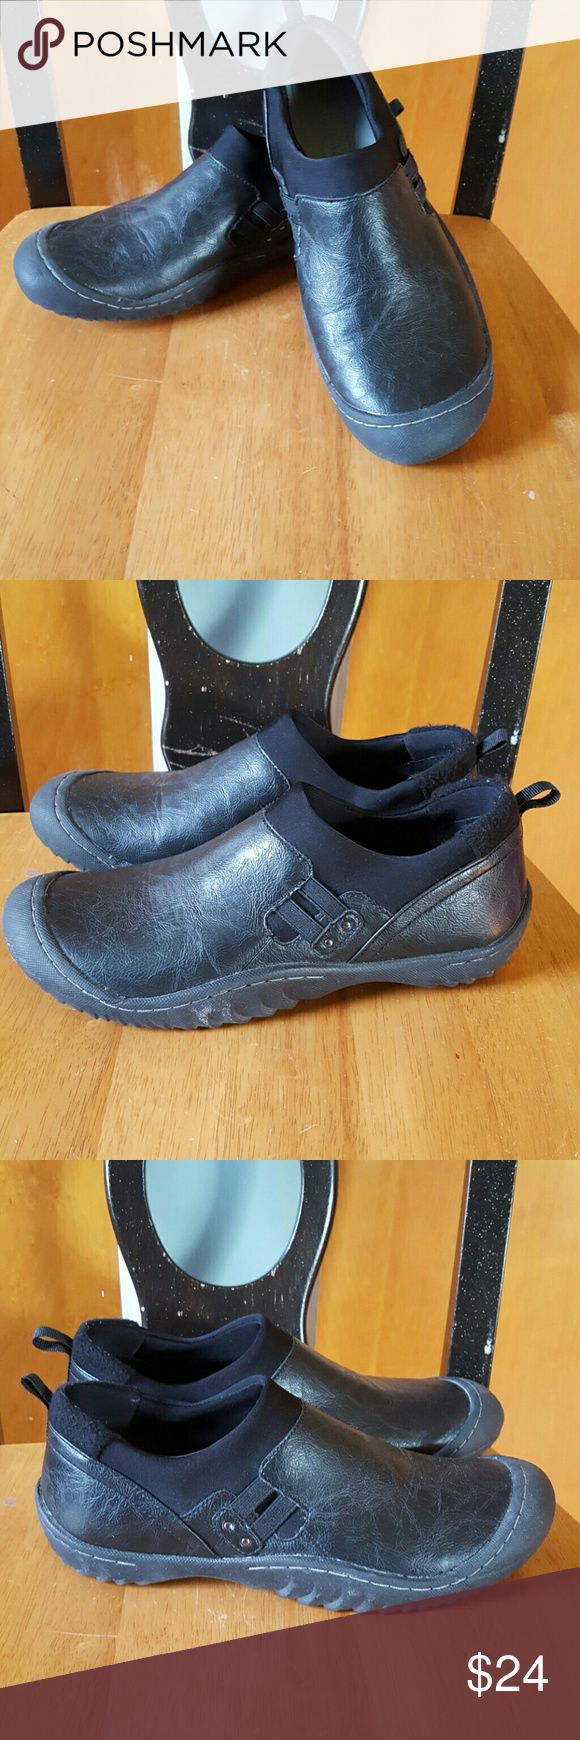 J-41 Jeep Shoes! Great Condition Only Worn Once! These shoes feature a cushioning inside sole with a Jeep Engineered Traction sole on the outside as pictured! Along with the bottom sole being made with partially recycled rubber helping the planet!?? Awesome shoes to just slip on and go!! Jeep Shoes